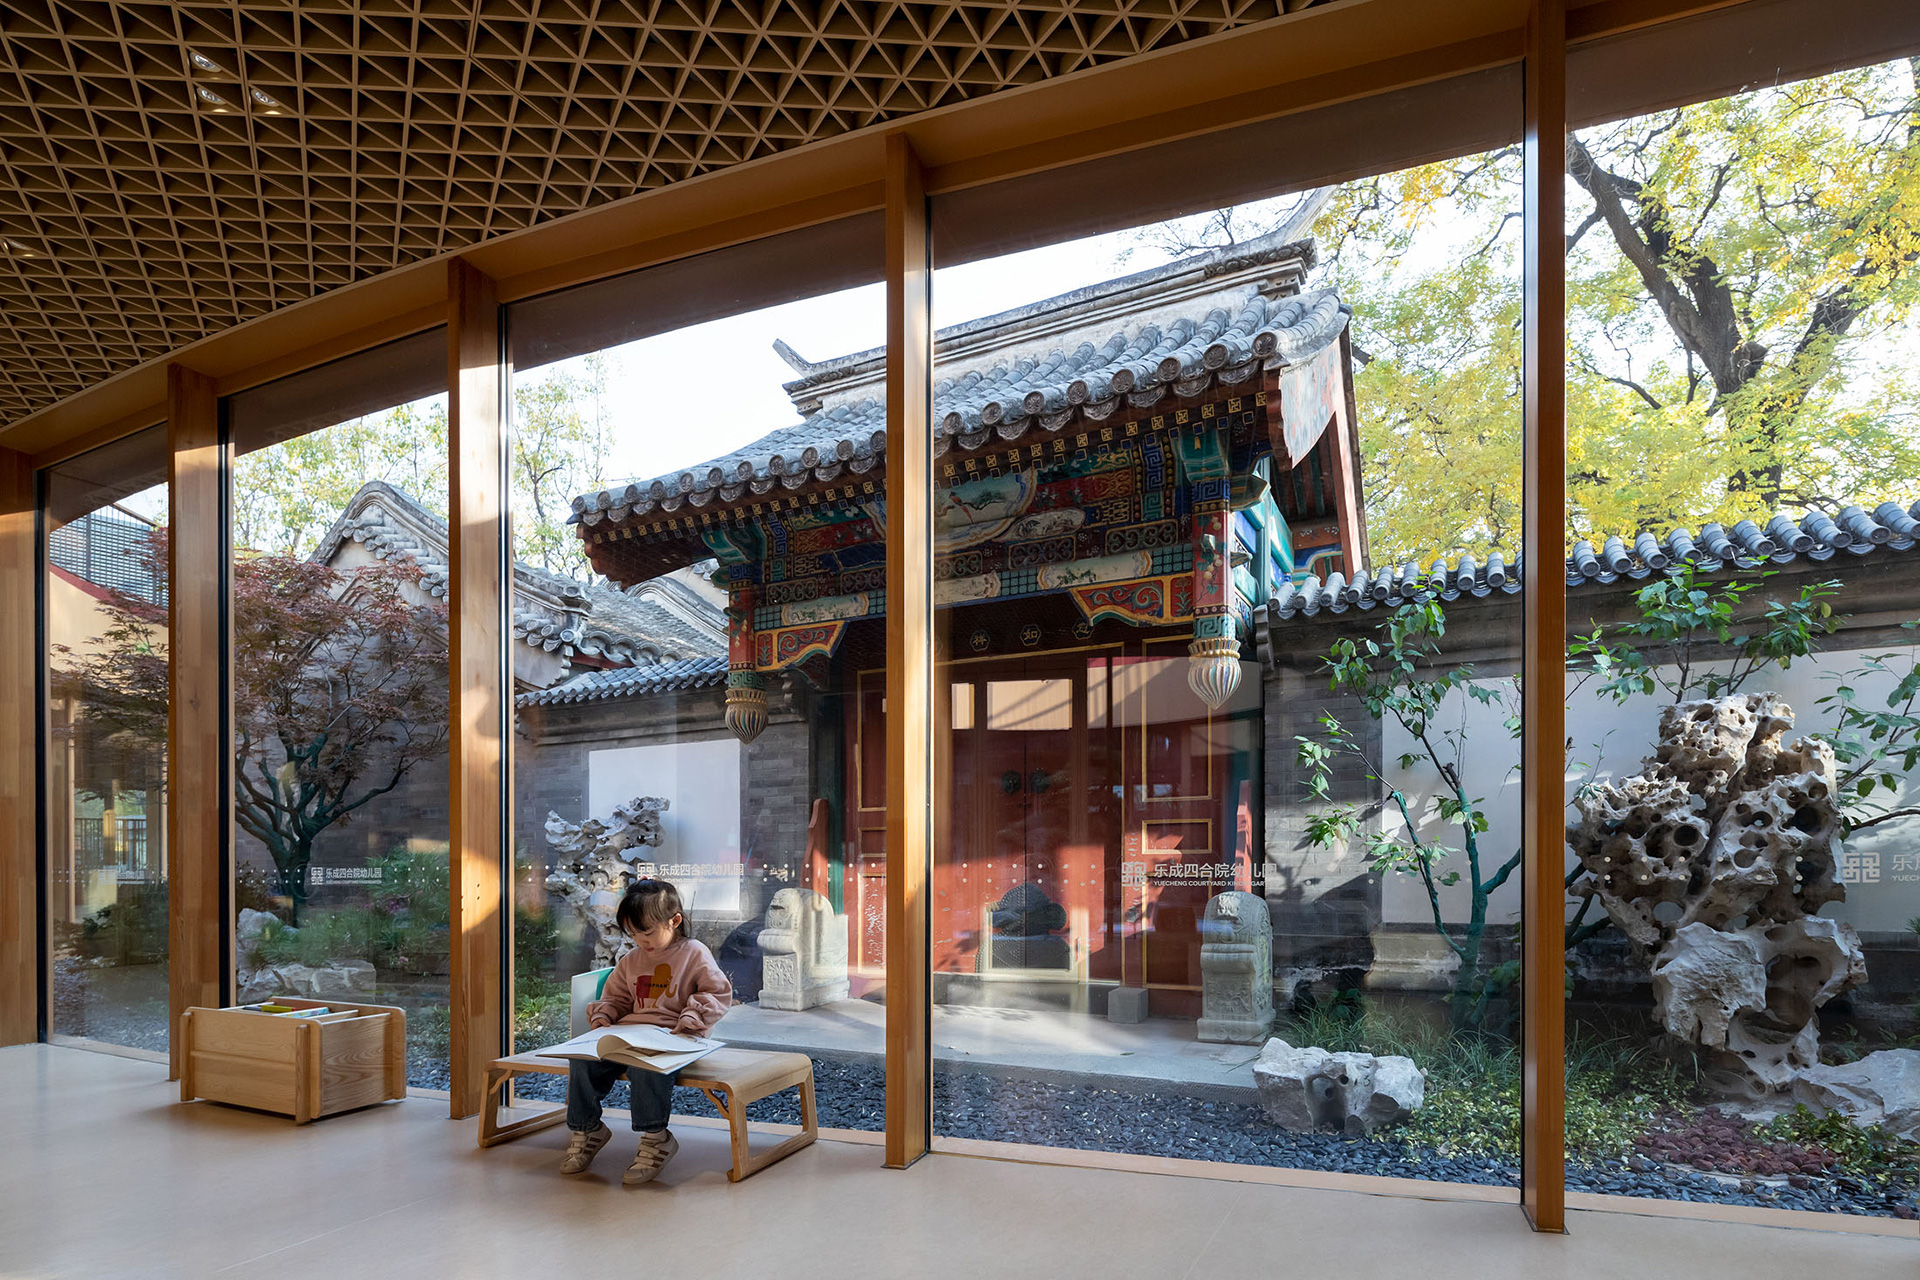 A quaint learning space for toddlers with a view of the historic past | YueCheng Courtyard Kindergarten designed by MAD | STIRworld